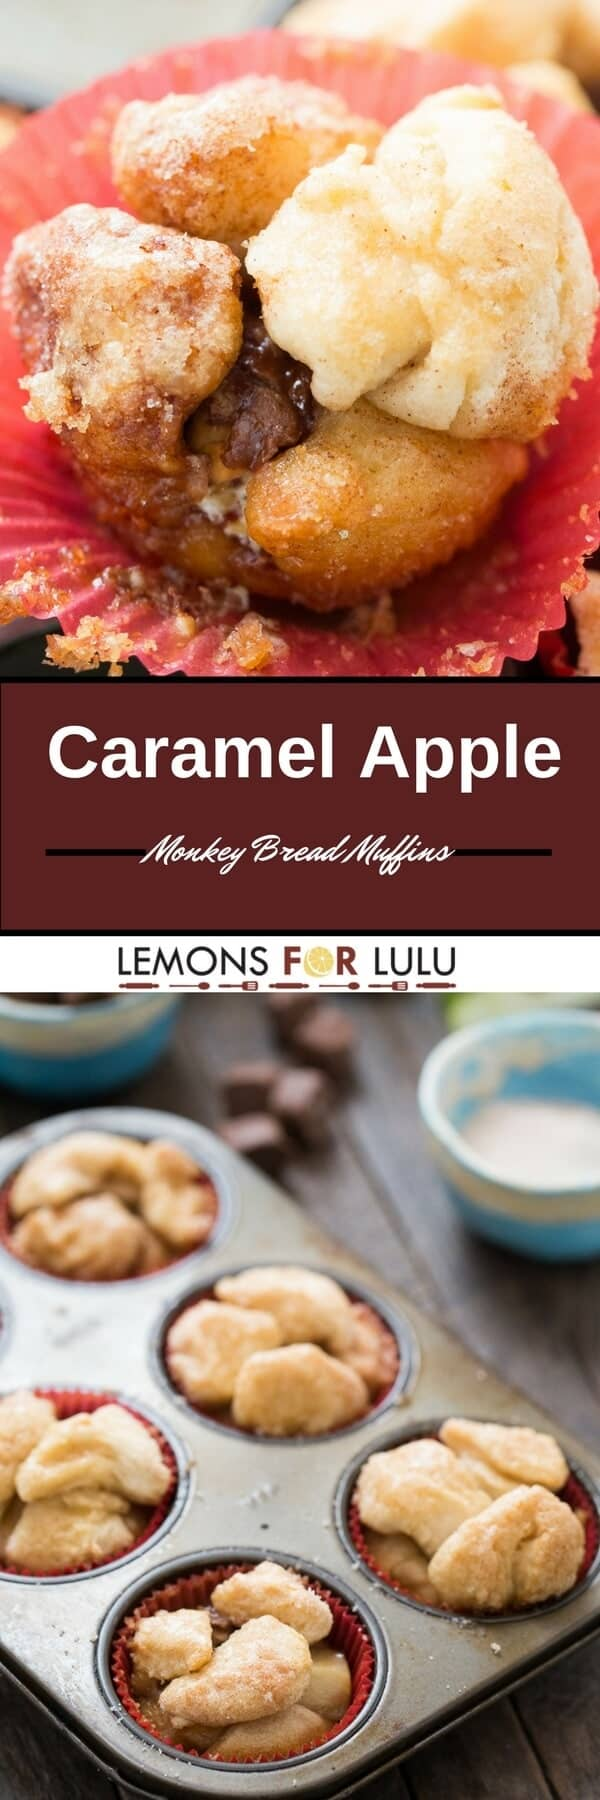 Caramel and apples make for a delicious filling for these easy monkey bread muffins!